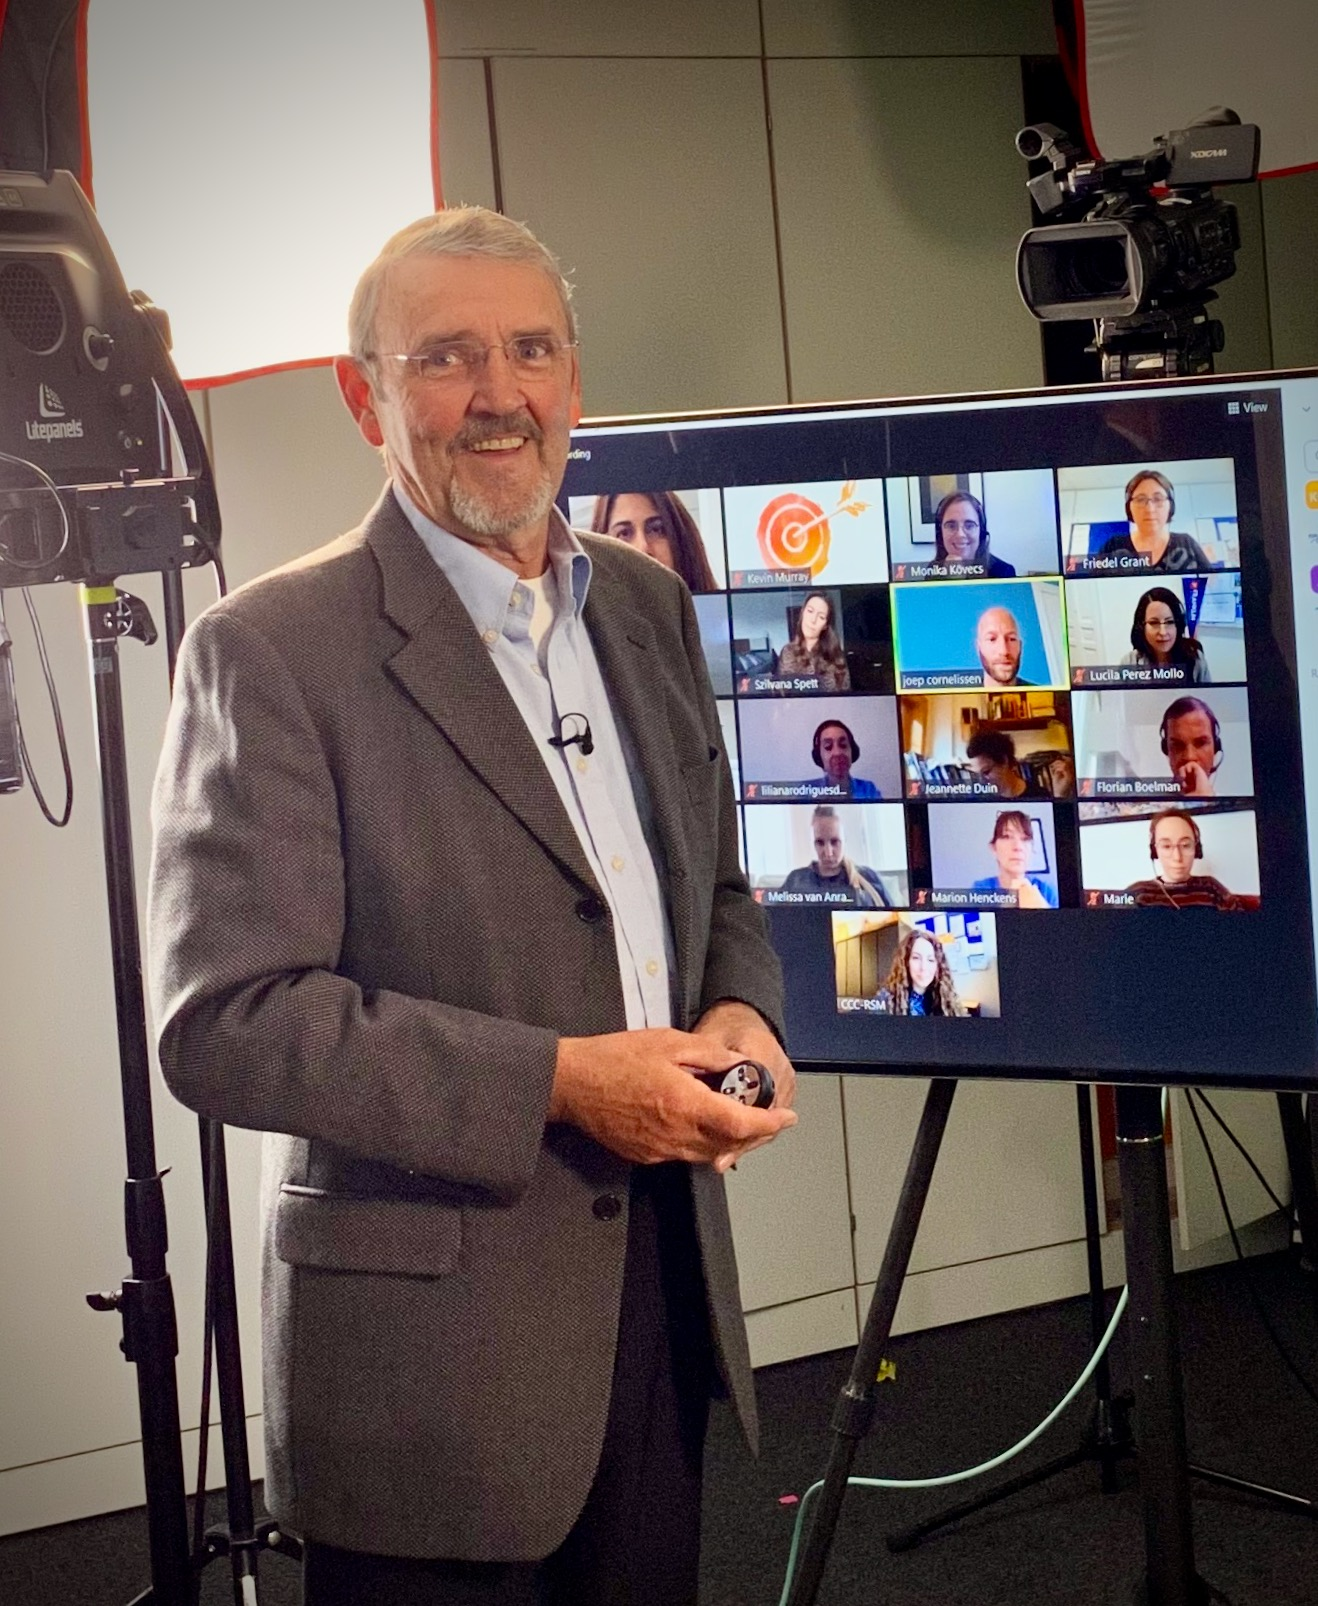 Kevin standing in front of a TV screen that is showing a video call with several people